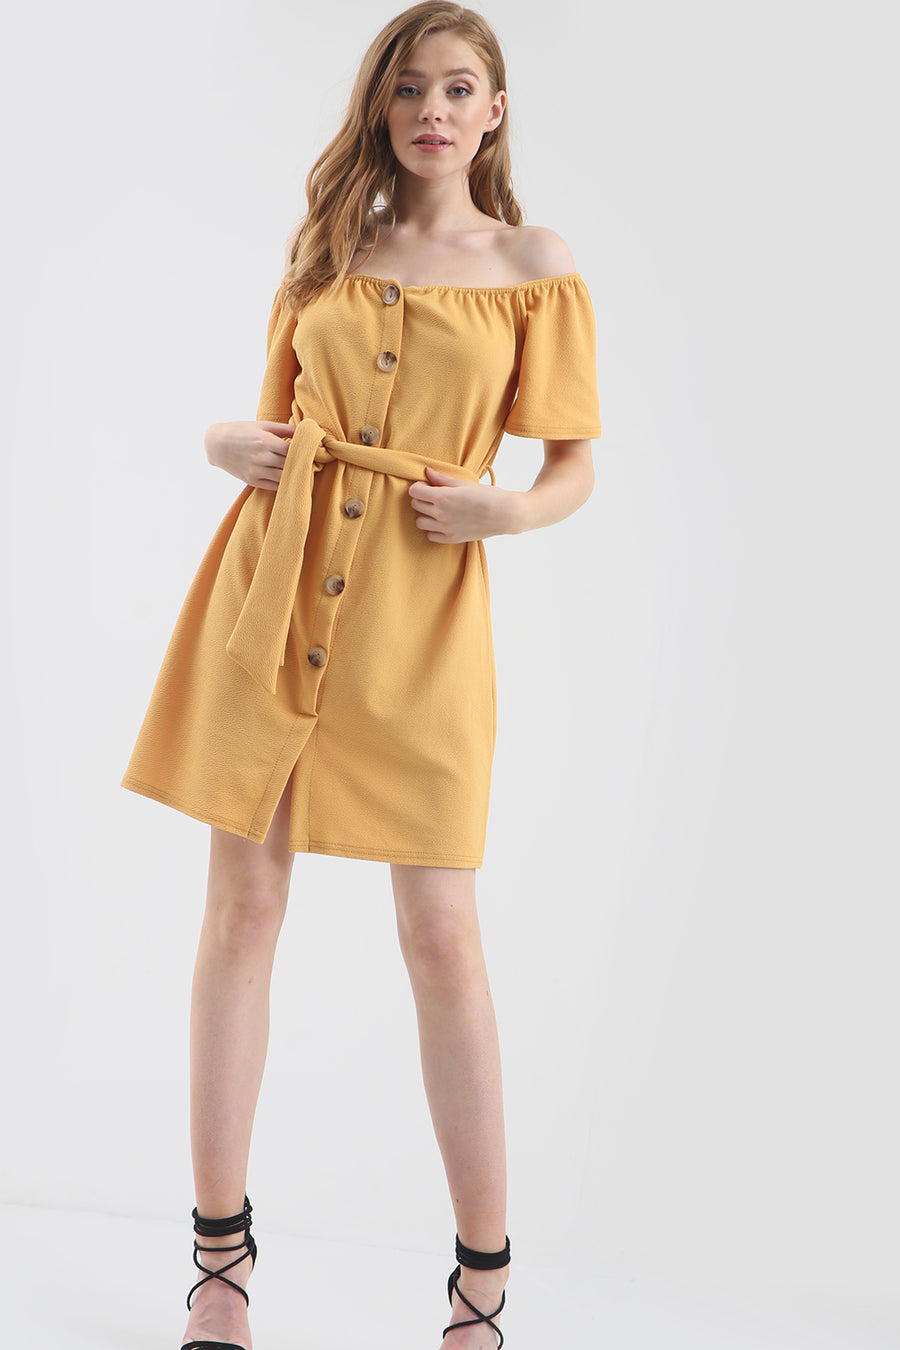 Yellow Off Shoulder Button Through Mini Dress - bejealous-com